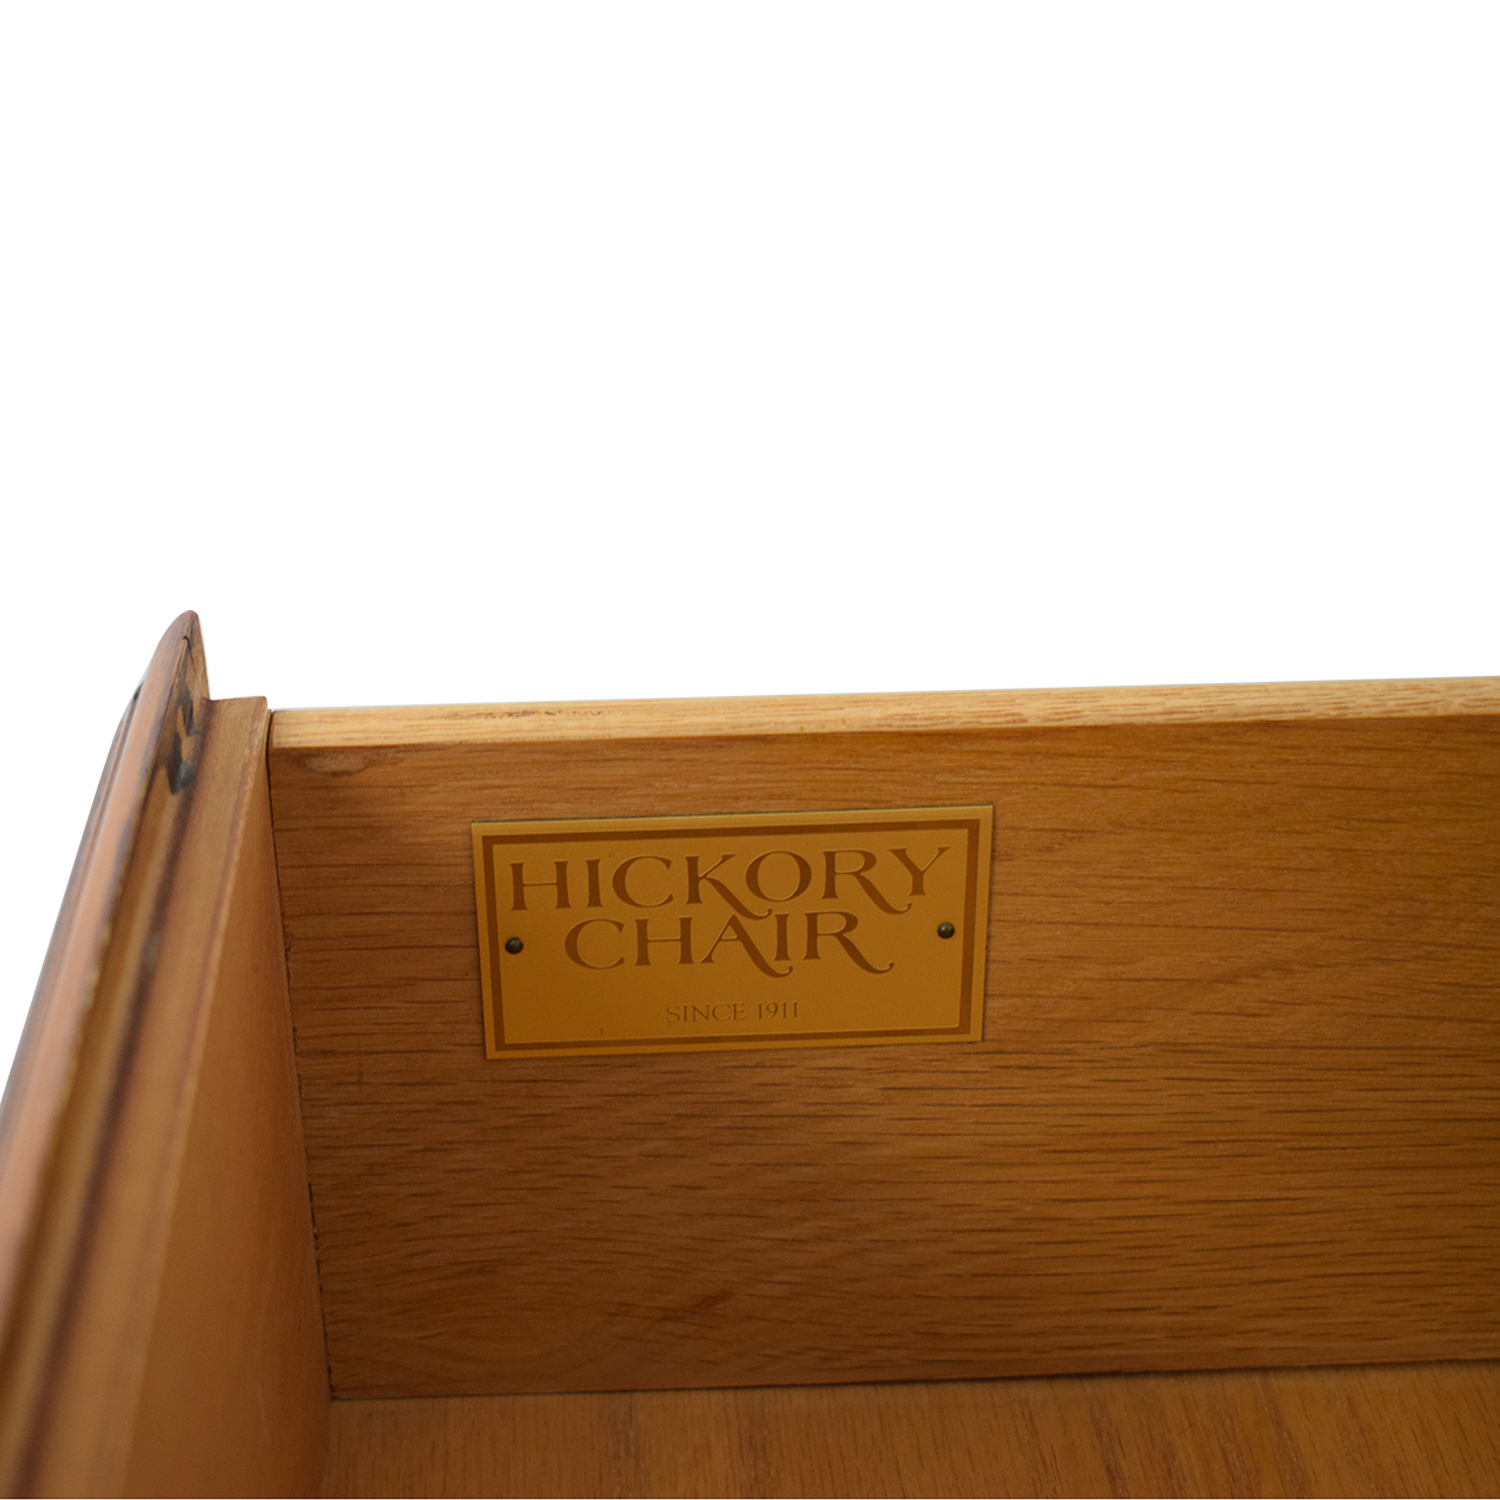 Hickory Chair Hickory Chair Chest Of Ten Drawers nj